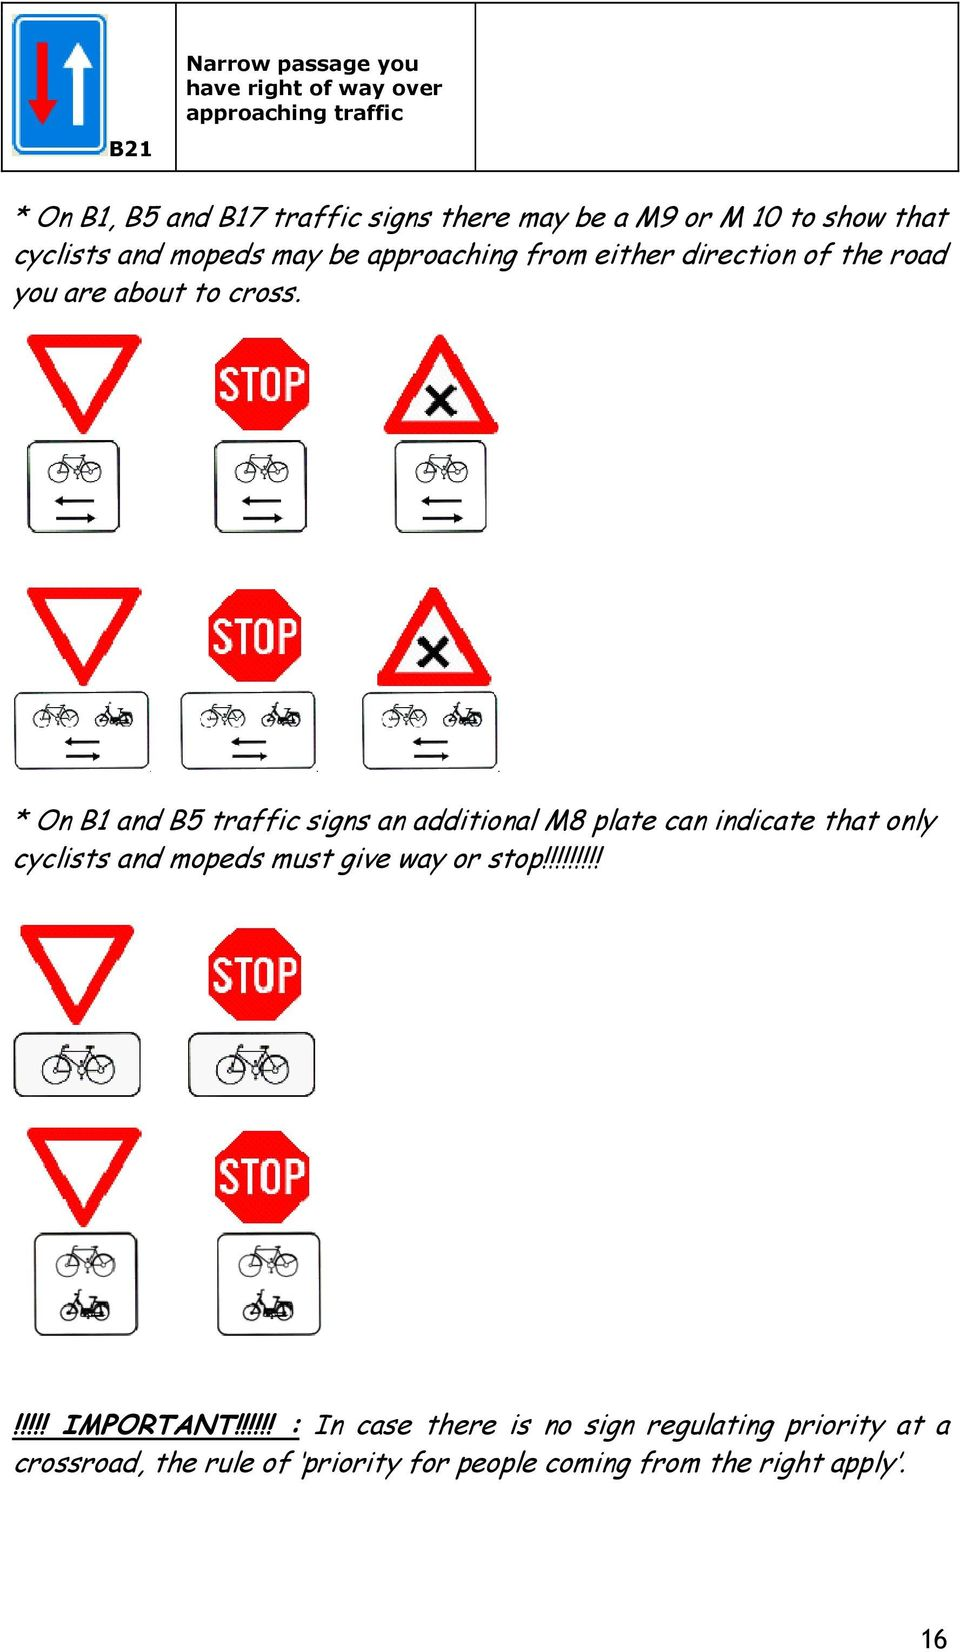 * On B1 and B5 traffic signs an additional M8 plate can indicate that only cyclists and mopeds must give way or stop!!!!!!!!!!!!!! IMPORTANT!